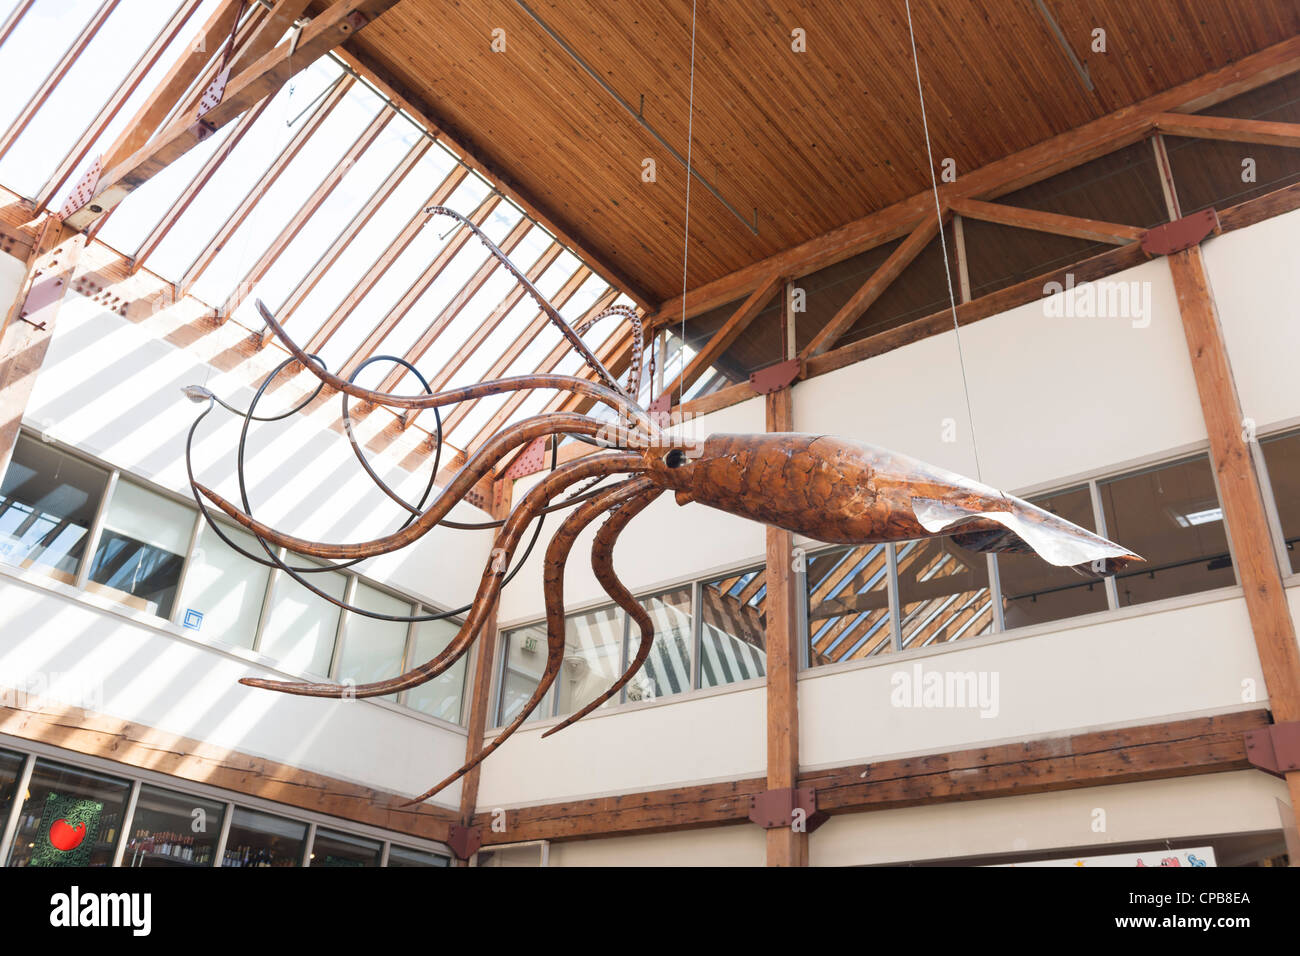 Giant Squid by Patrick Wickline, Pike Place, Seattle - Stock Image